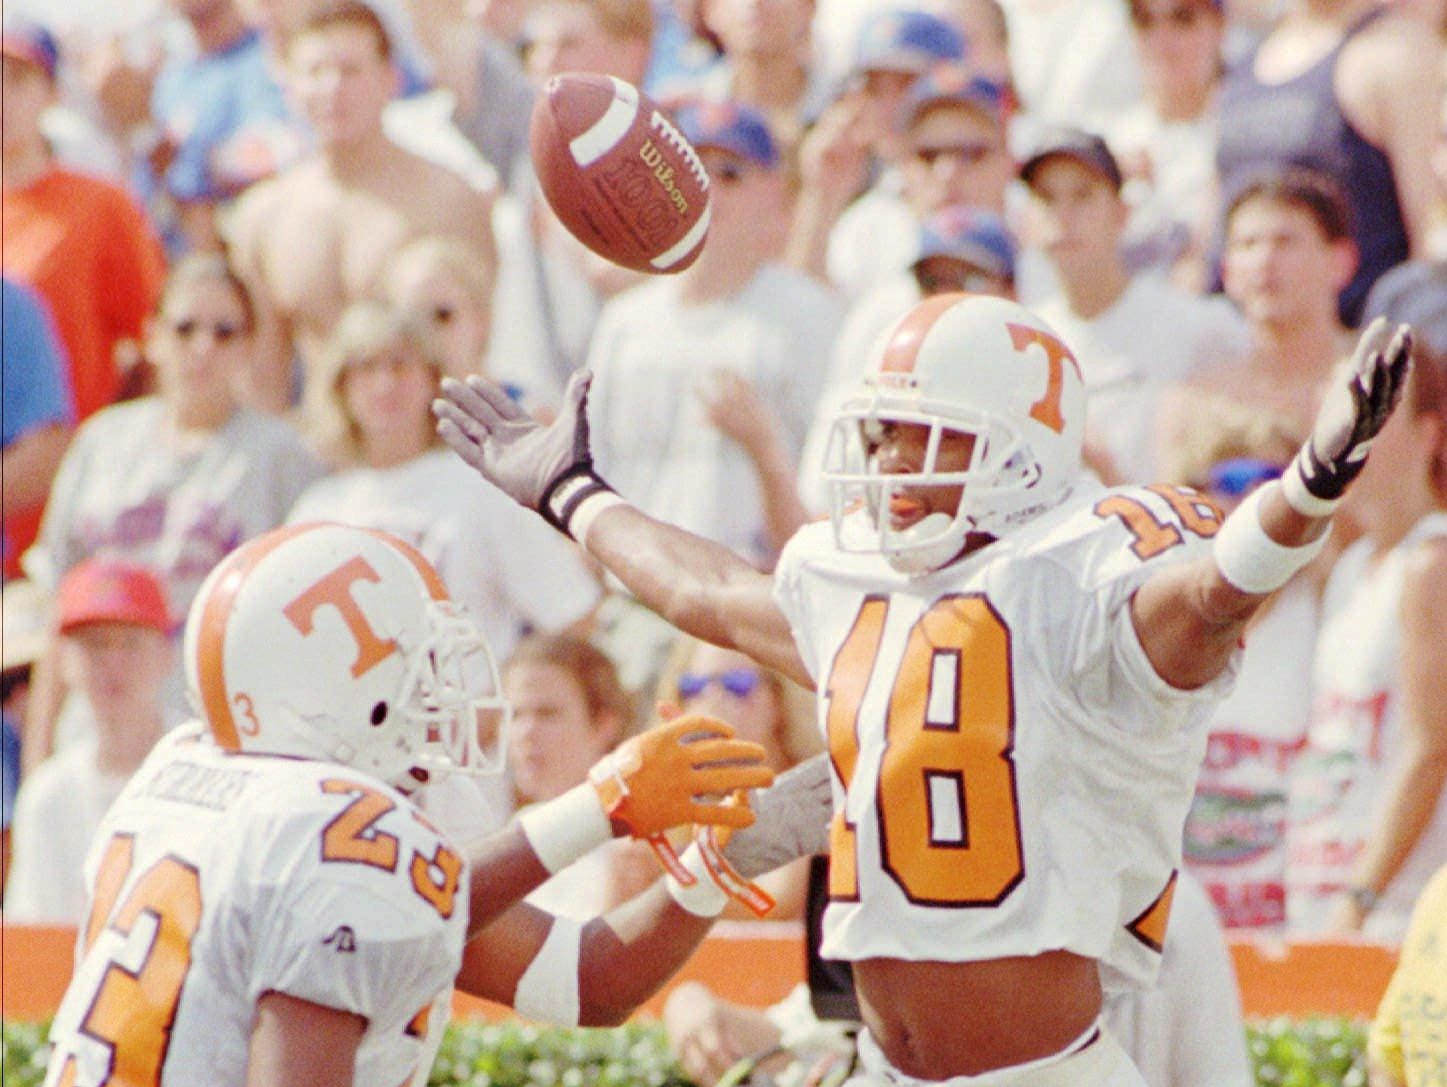 Tennessee's DeRon Jenkins (18) flips the ball into the air after scoring during the first quarter against Florida Saturday afternoon Sept. 16, 1995 at Florida Field in Gainesville as Tennessee's Shawn Summers (23) helps celebrate.